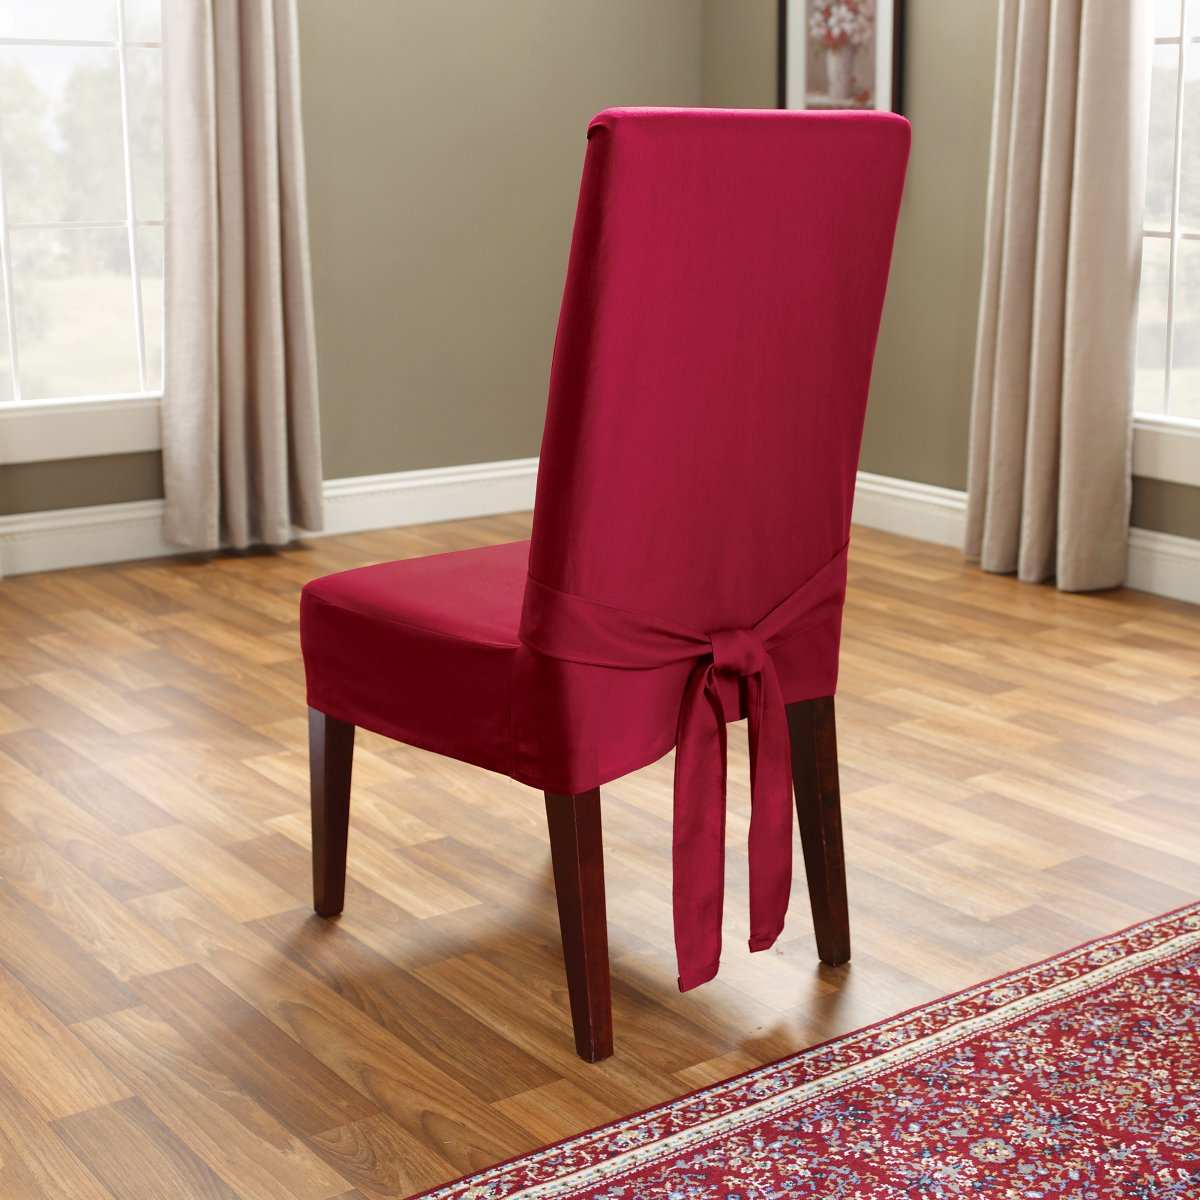 Dining room chairs seat covers